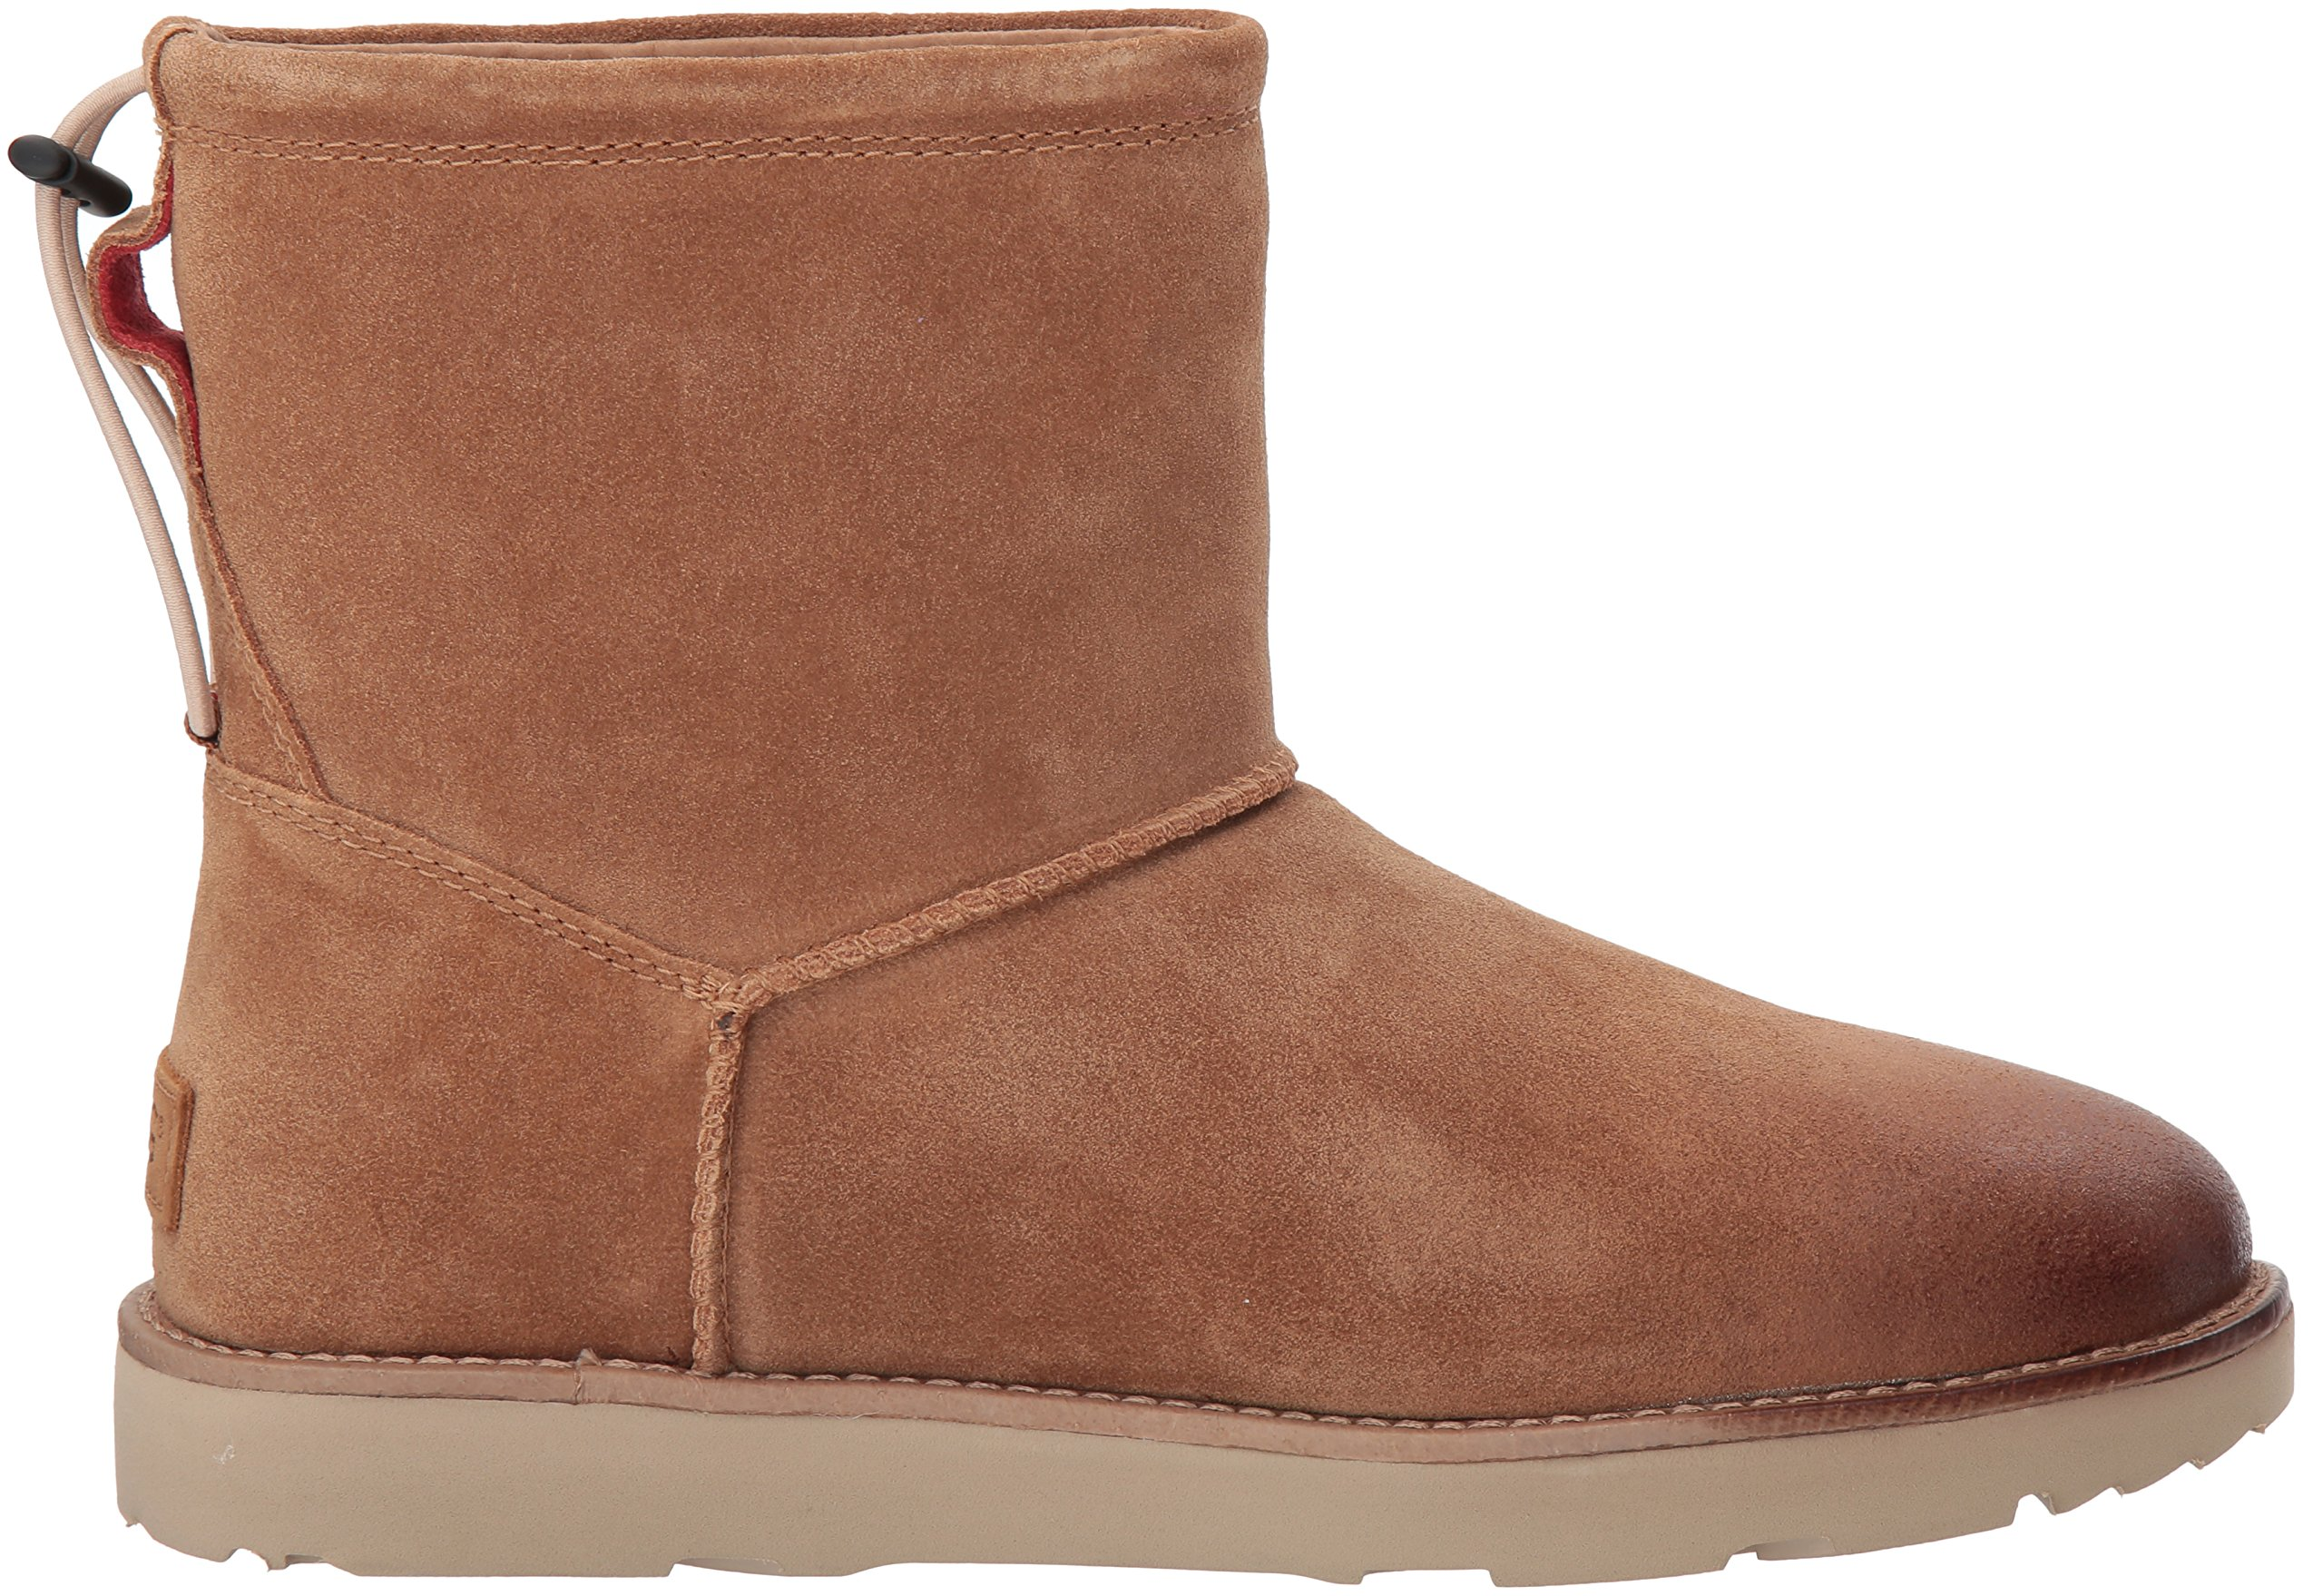 UGG Men's Classic Toggle Waterproof Winter Boot, Chestnut, 11 M US by UGG (Image #7)